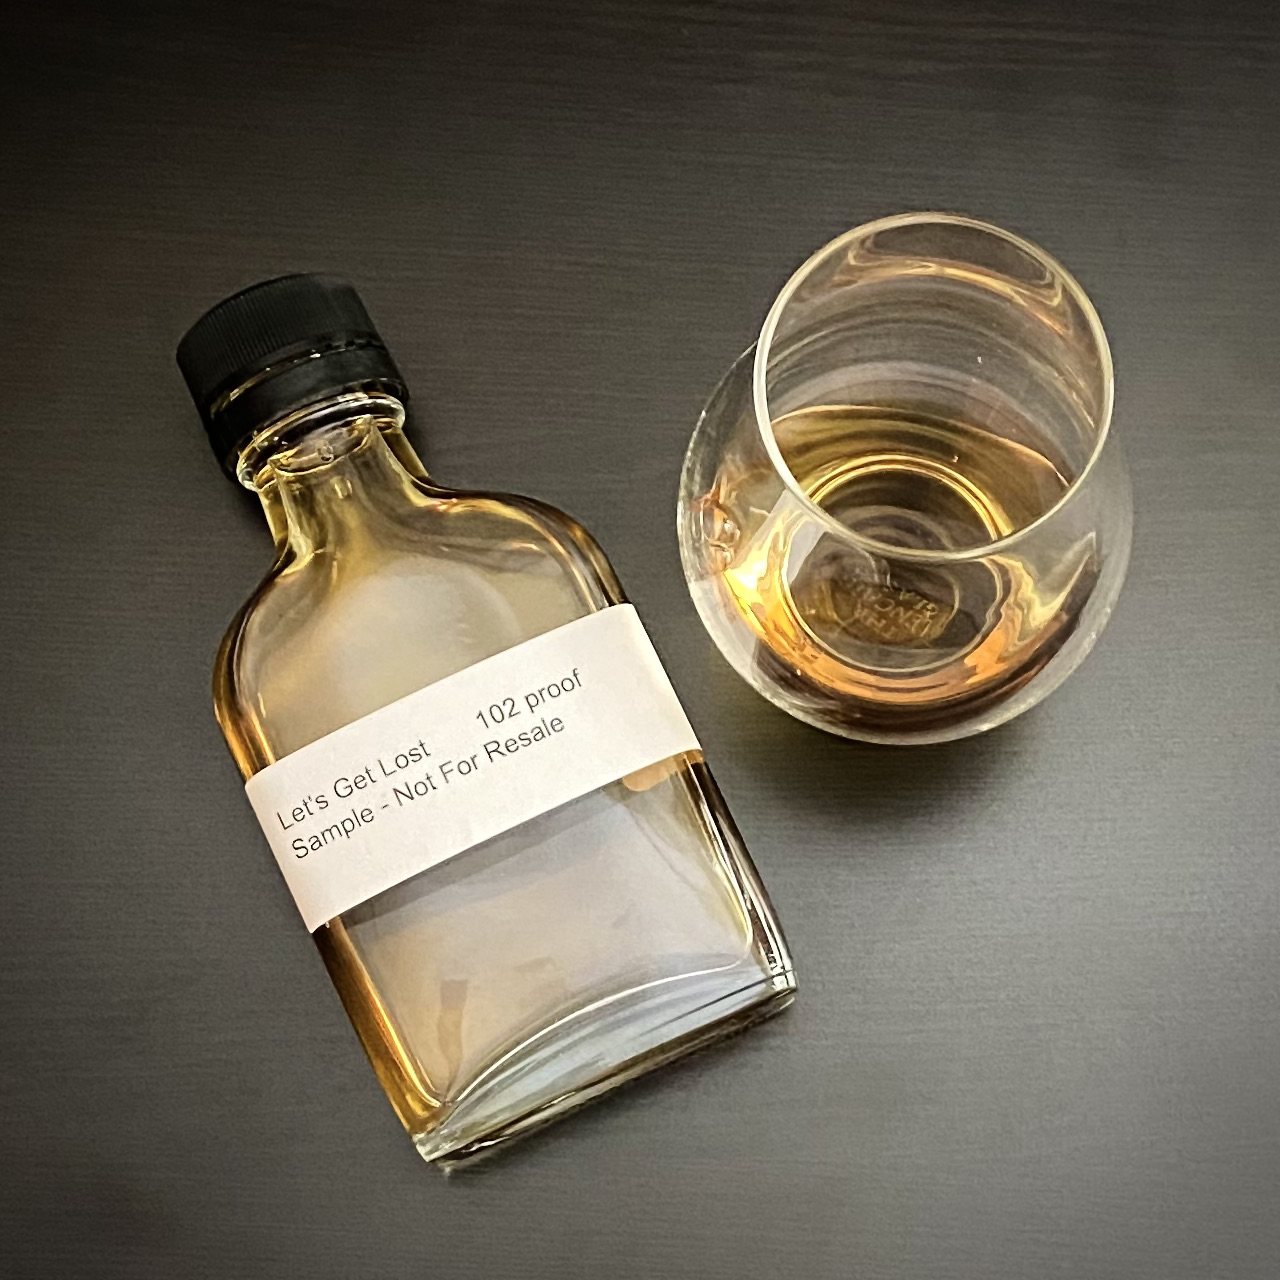 A sample bottle of Let's Get Lost Whiskey from Dogfish Head Distilling.